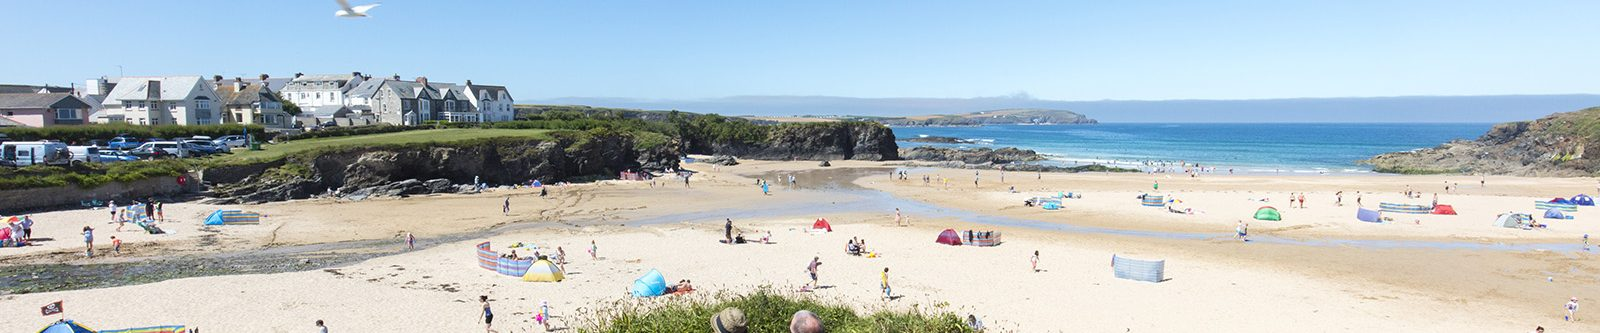 people at Trevone beach